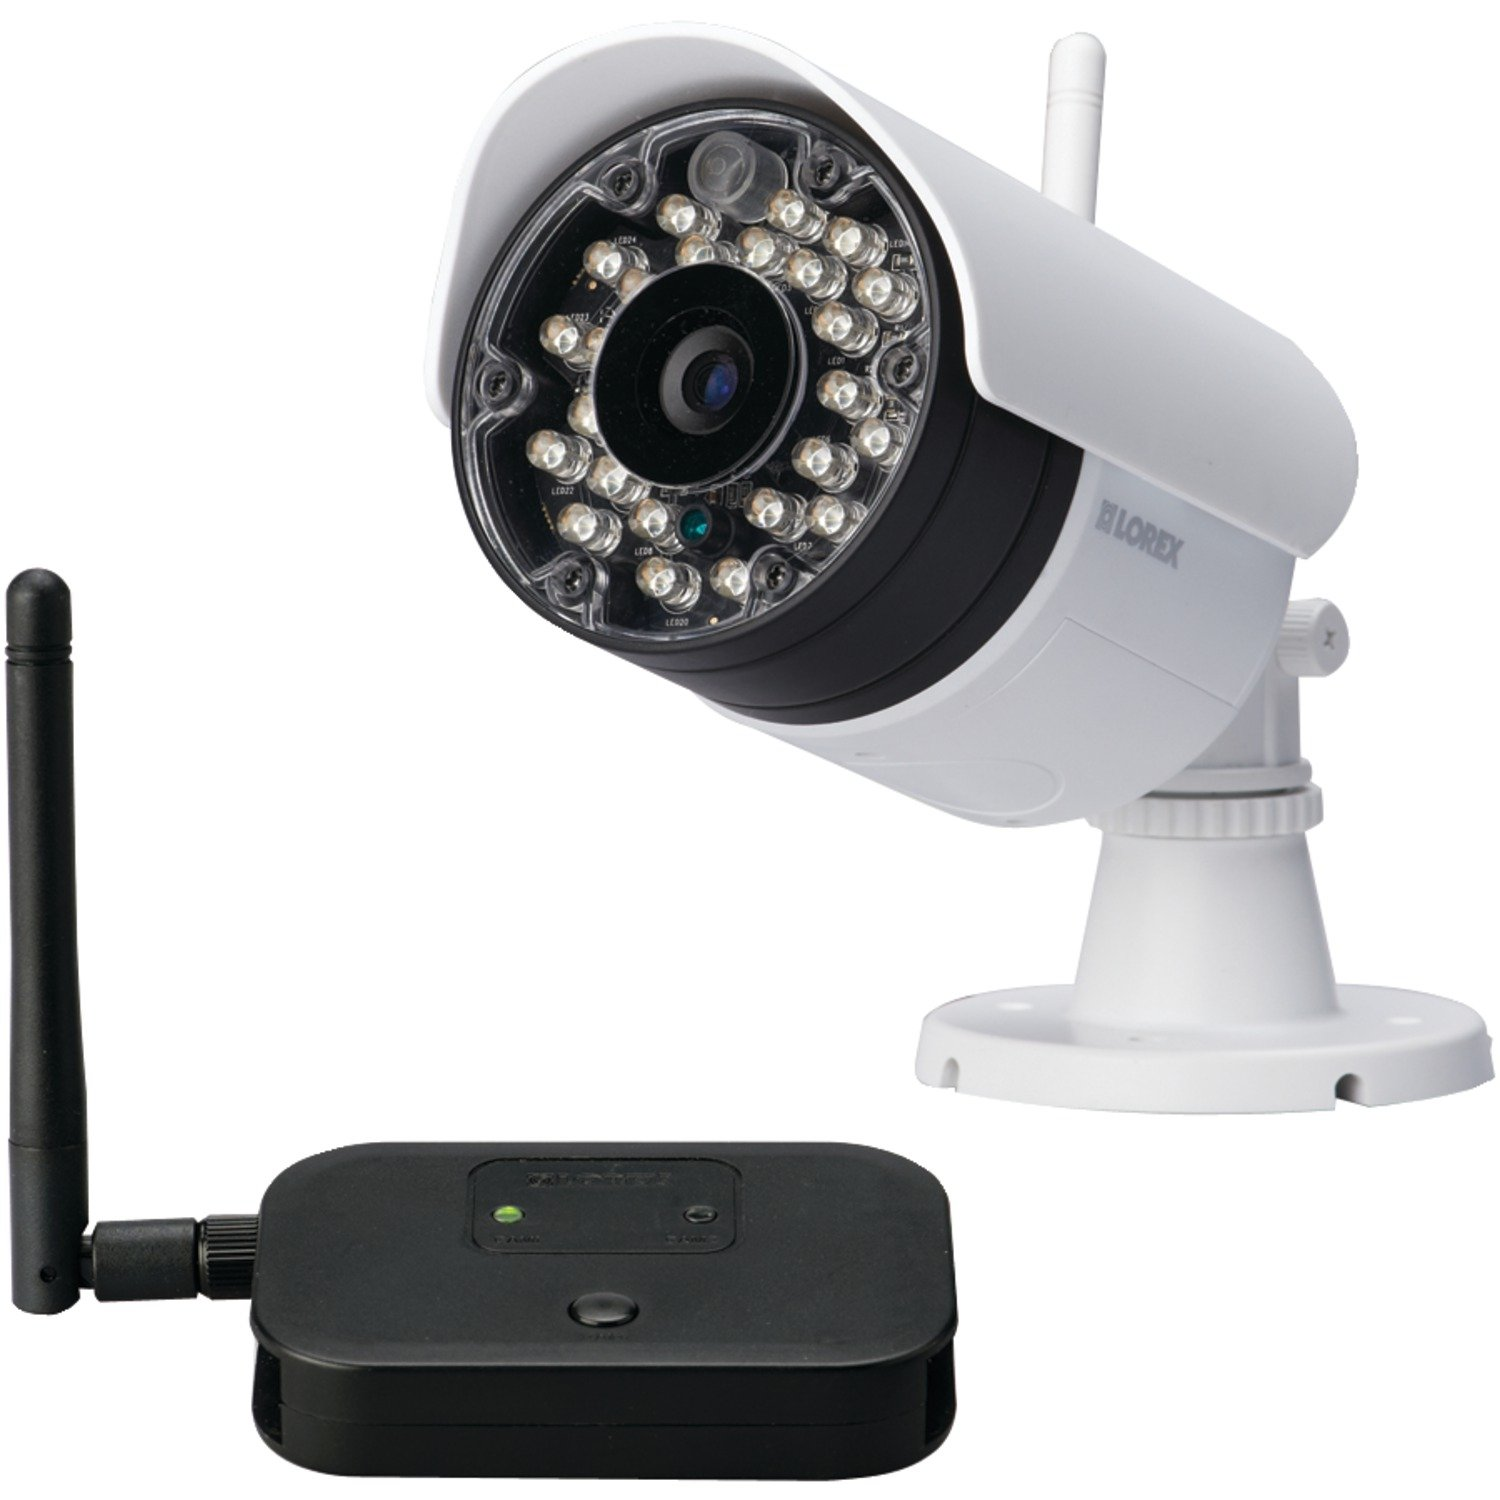 lorex security camera reviews 2018